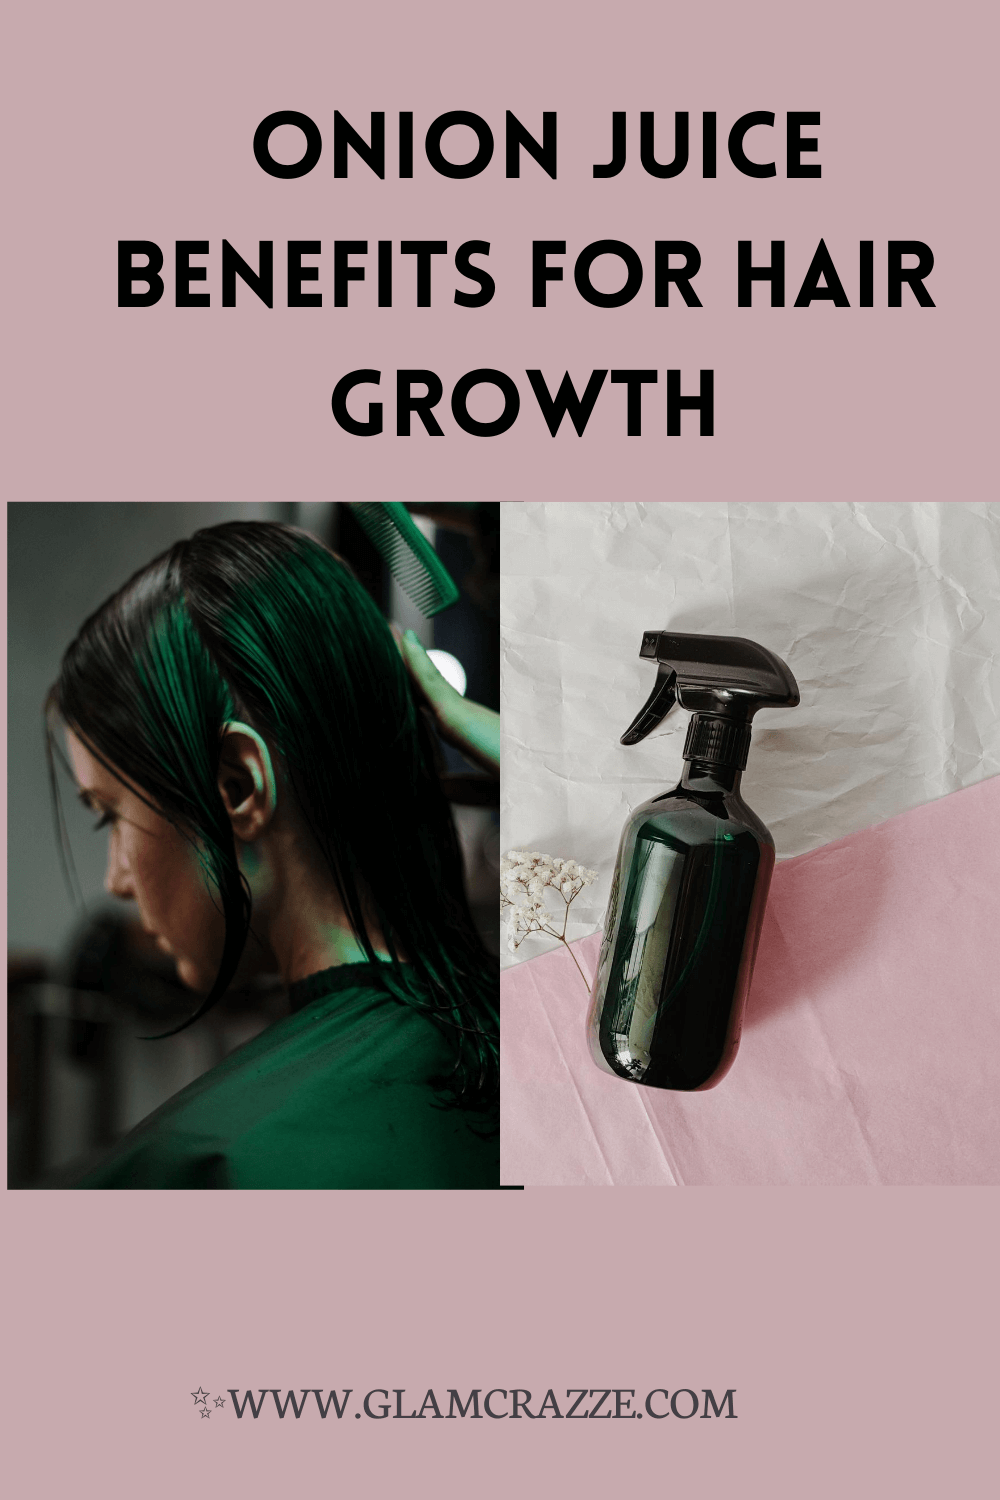 Application of onion juice to acquire benefits for hair growth